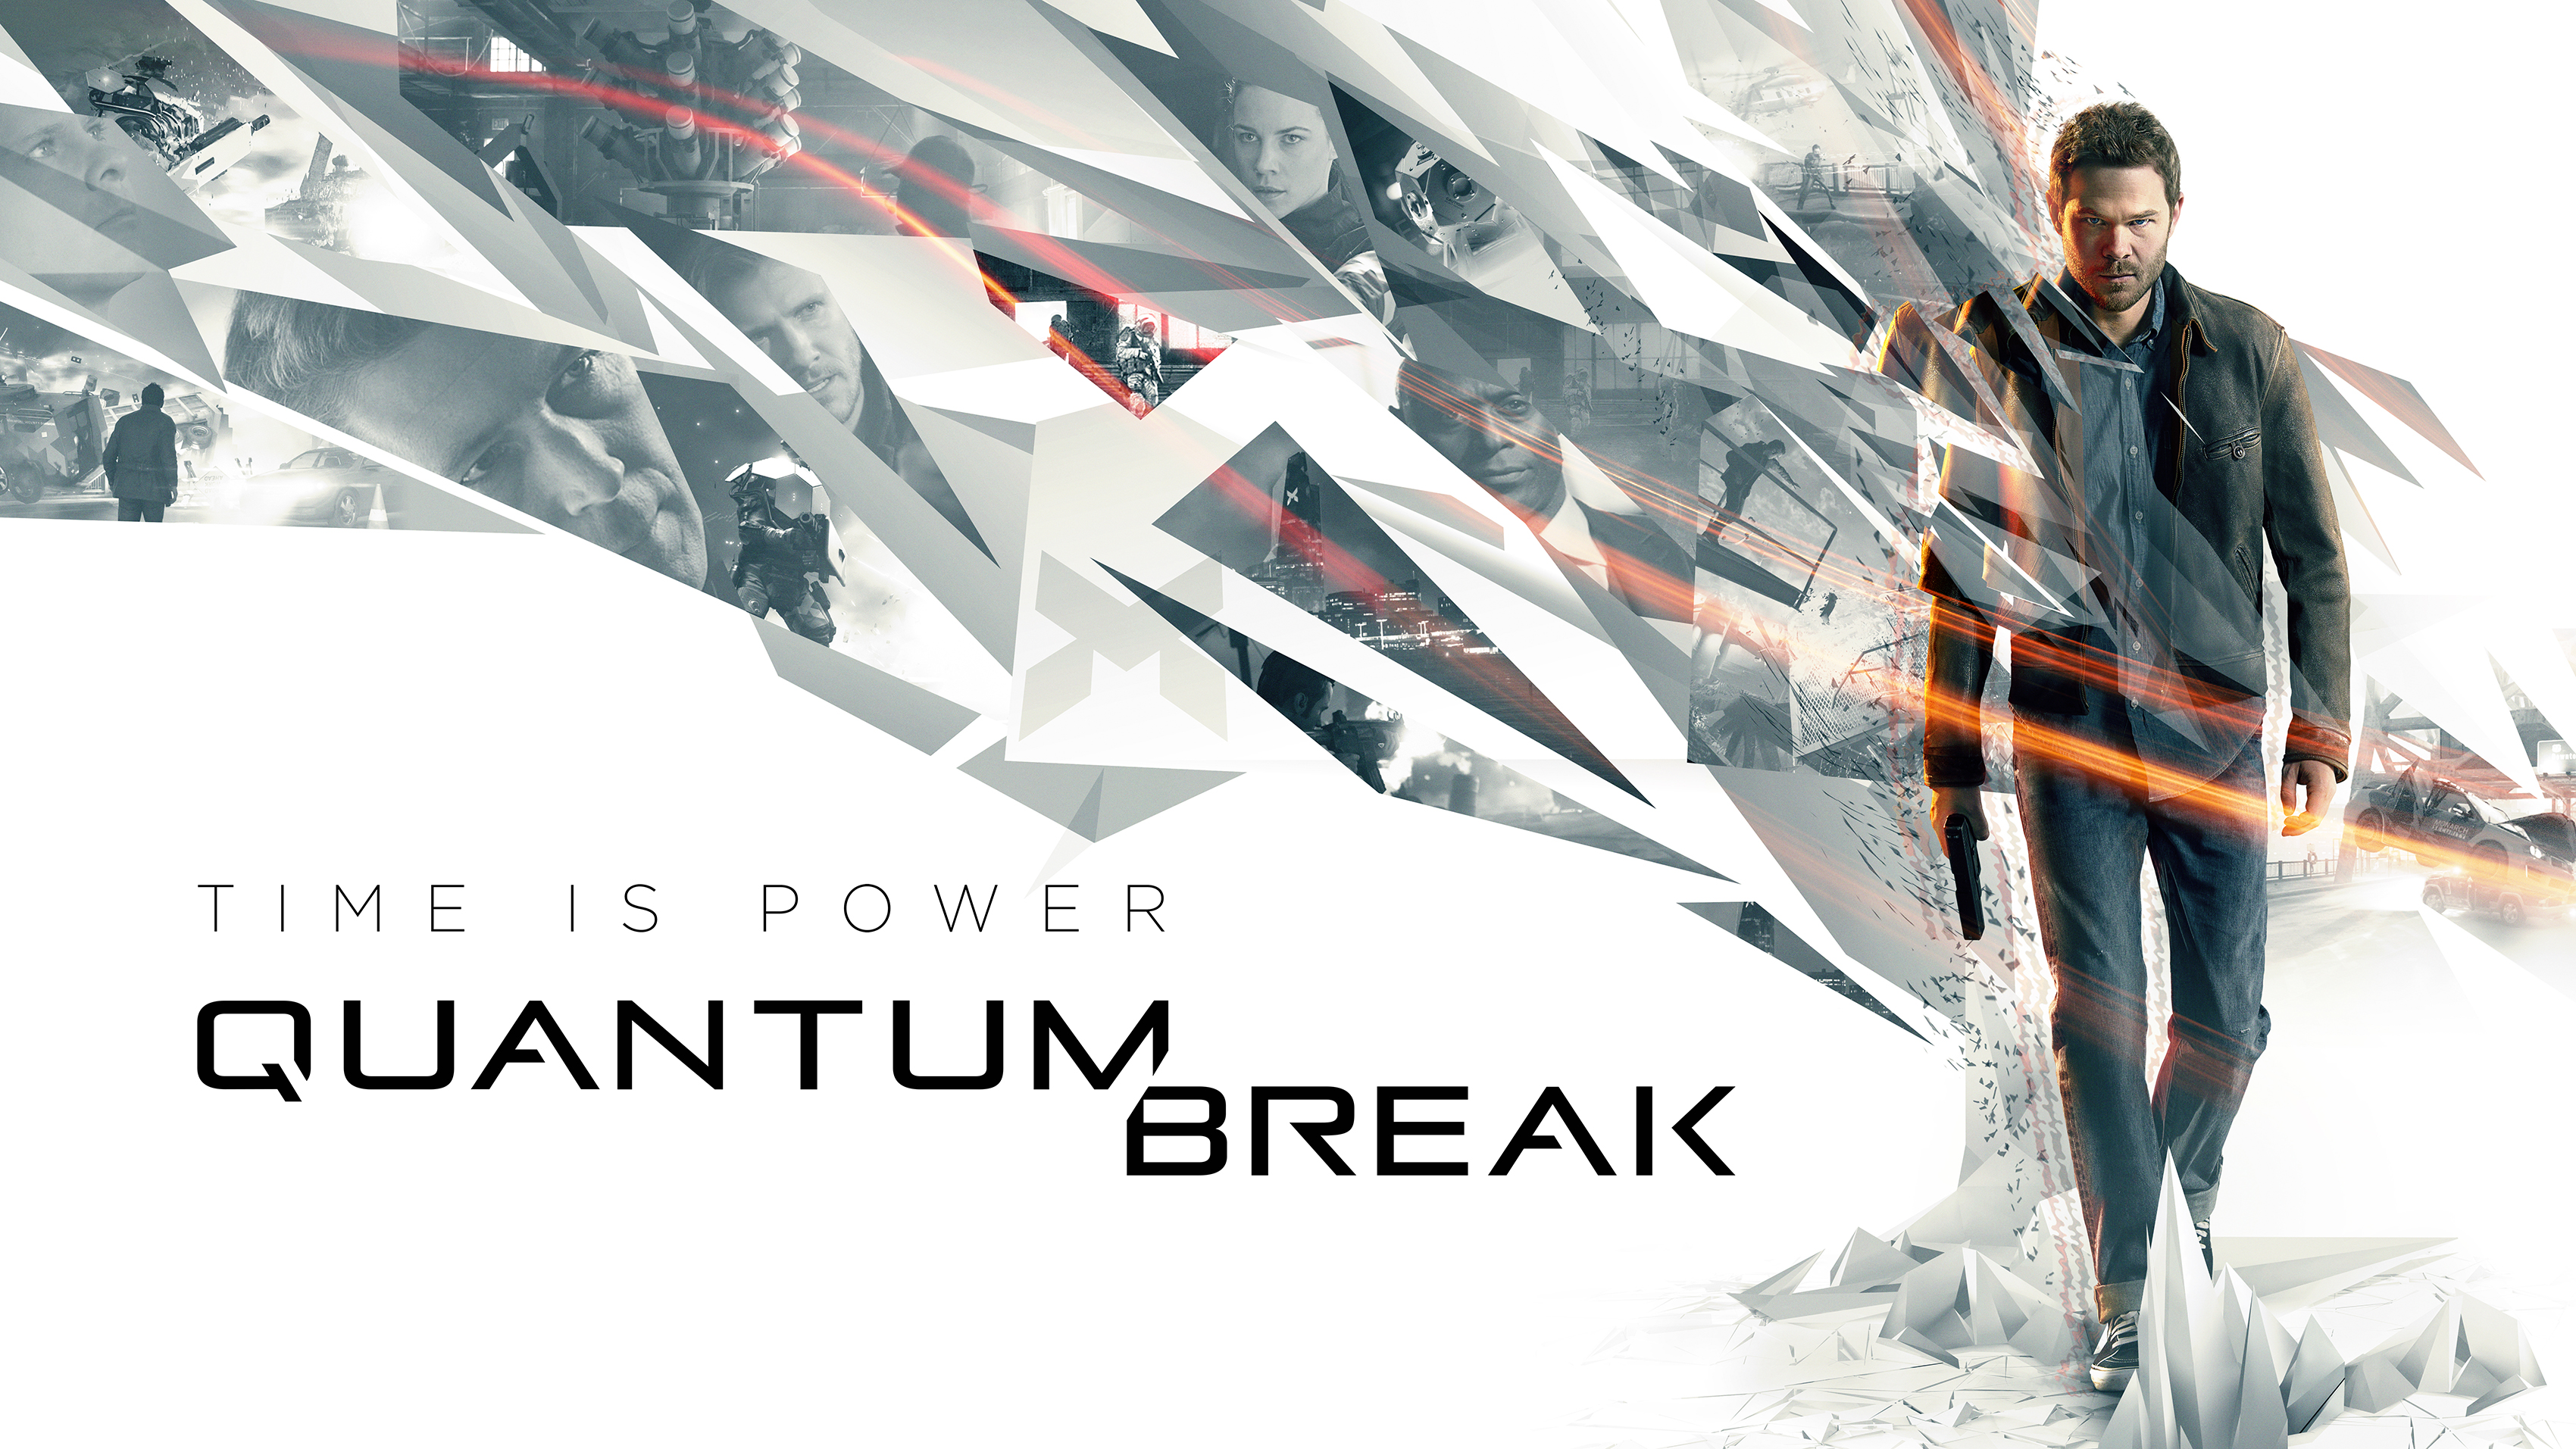 file_70146_quantum-break-header1